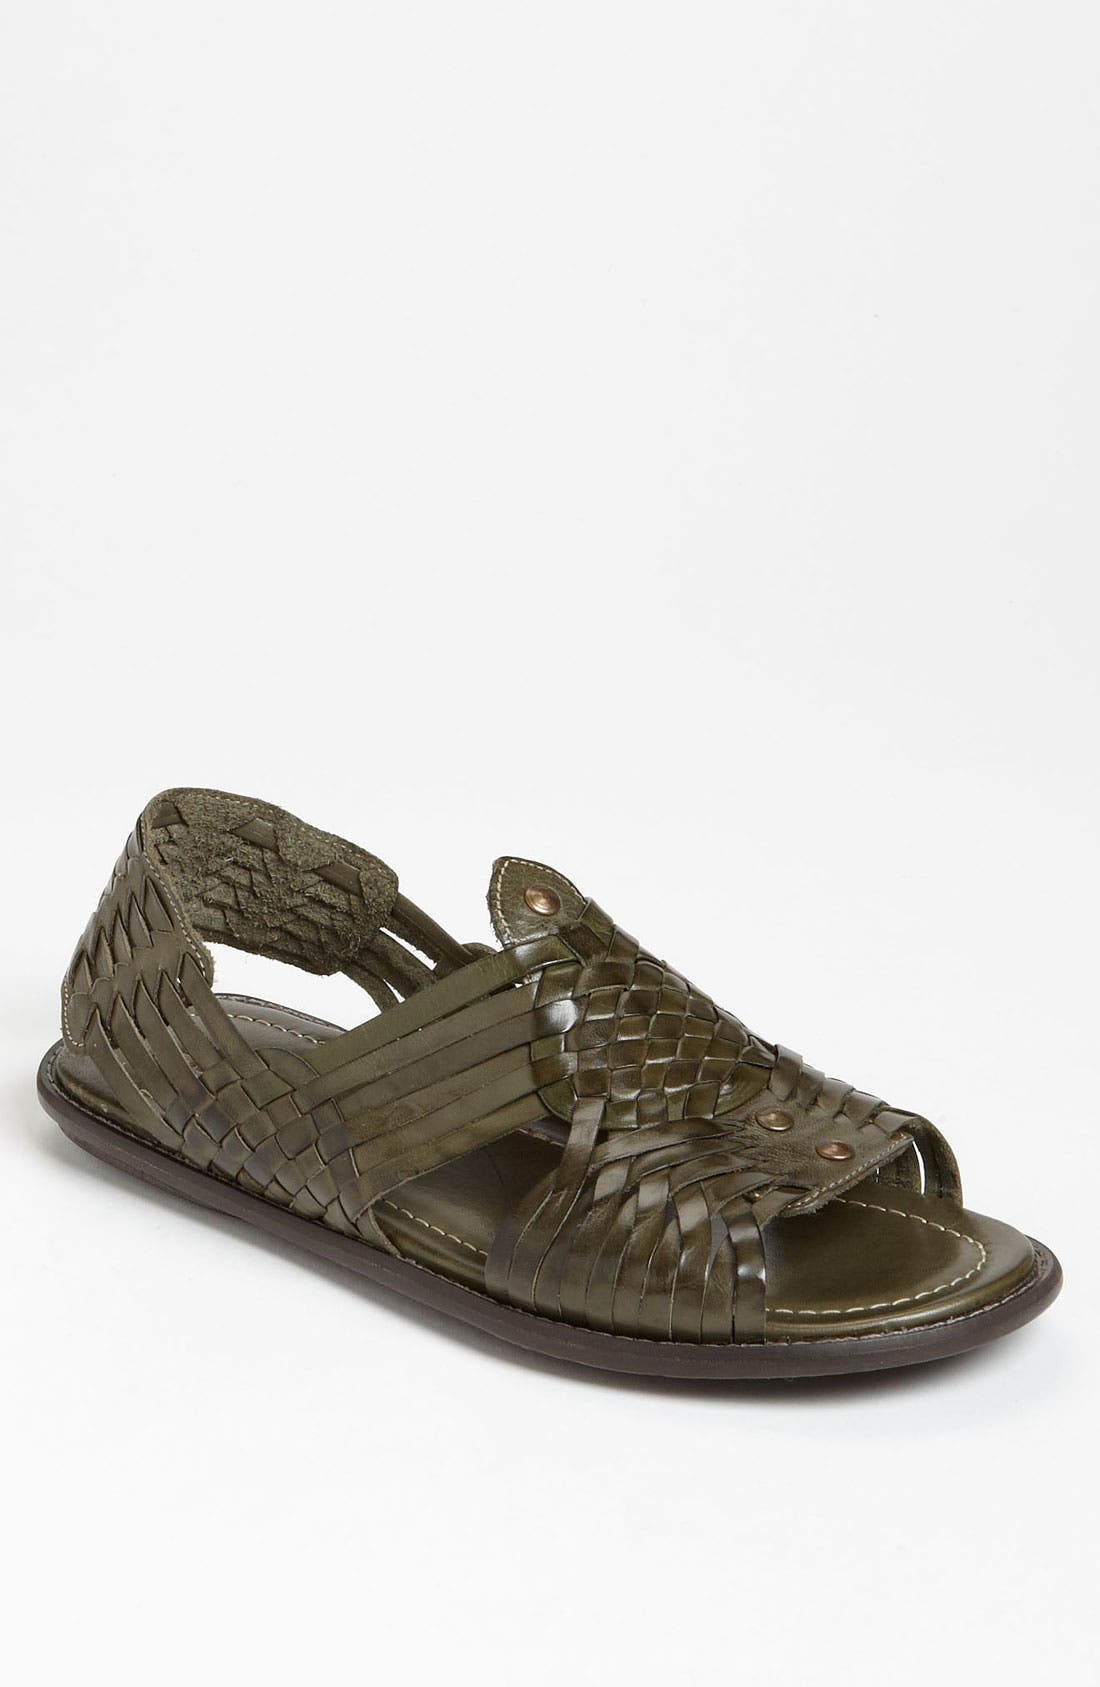 Alternate Image 1 Selected - Bed Stu 'Conde' Huarache Sandal (Online Only)